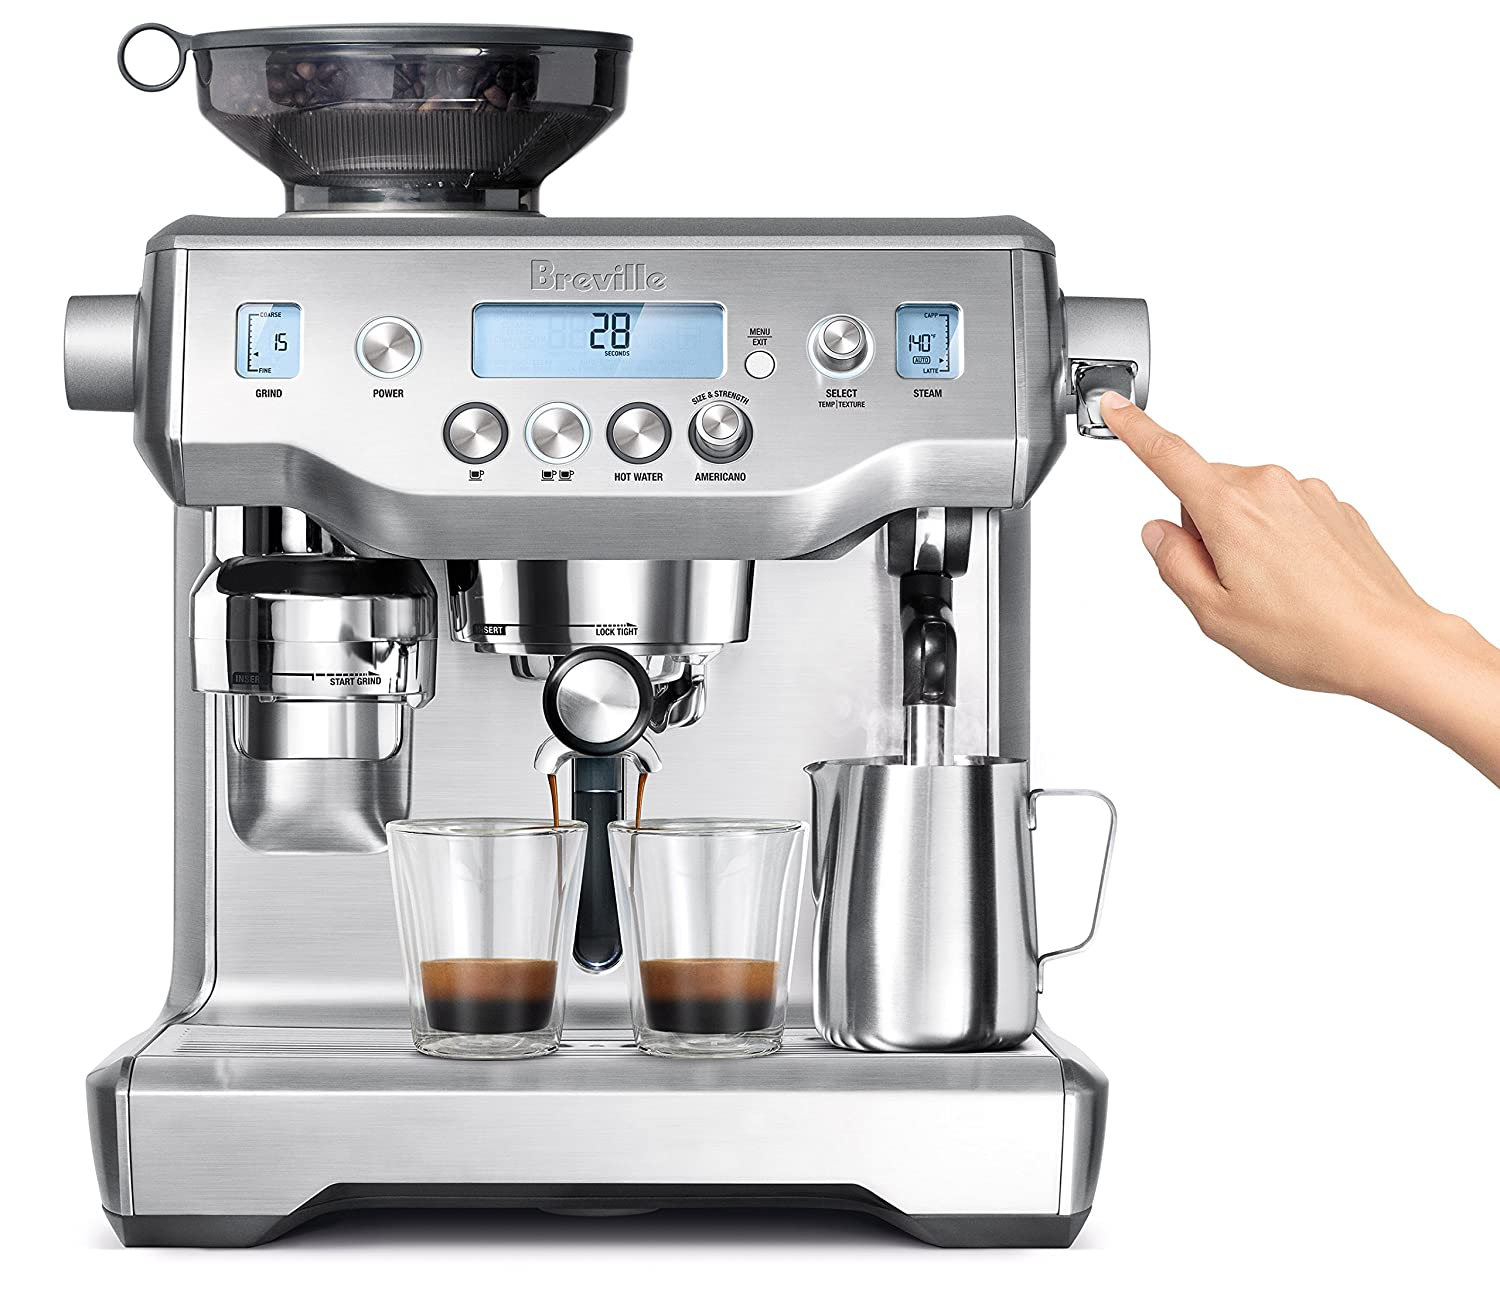 Breville Bes980 Xl Oracle Espresso Machine, Silver by Breville